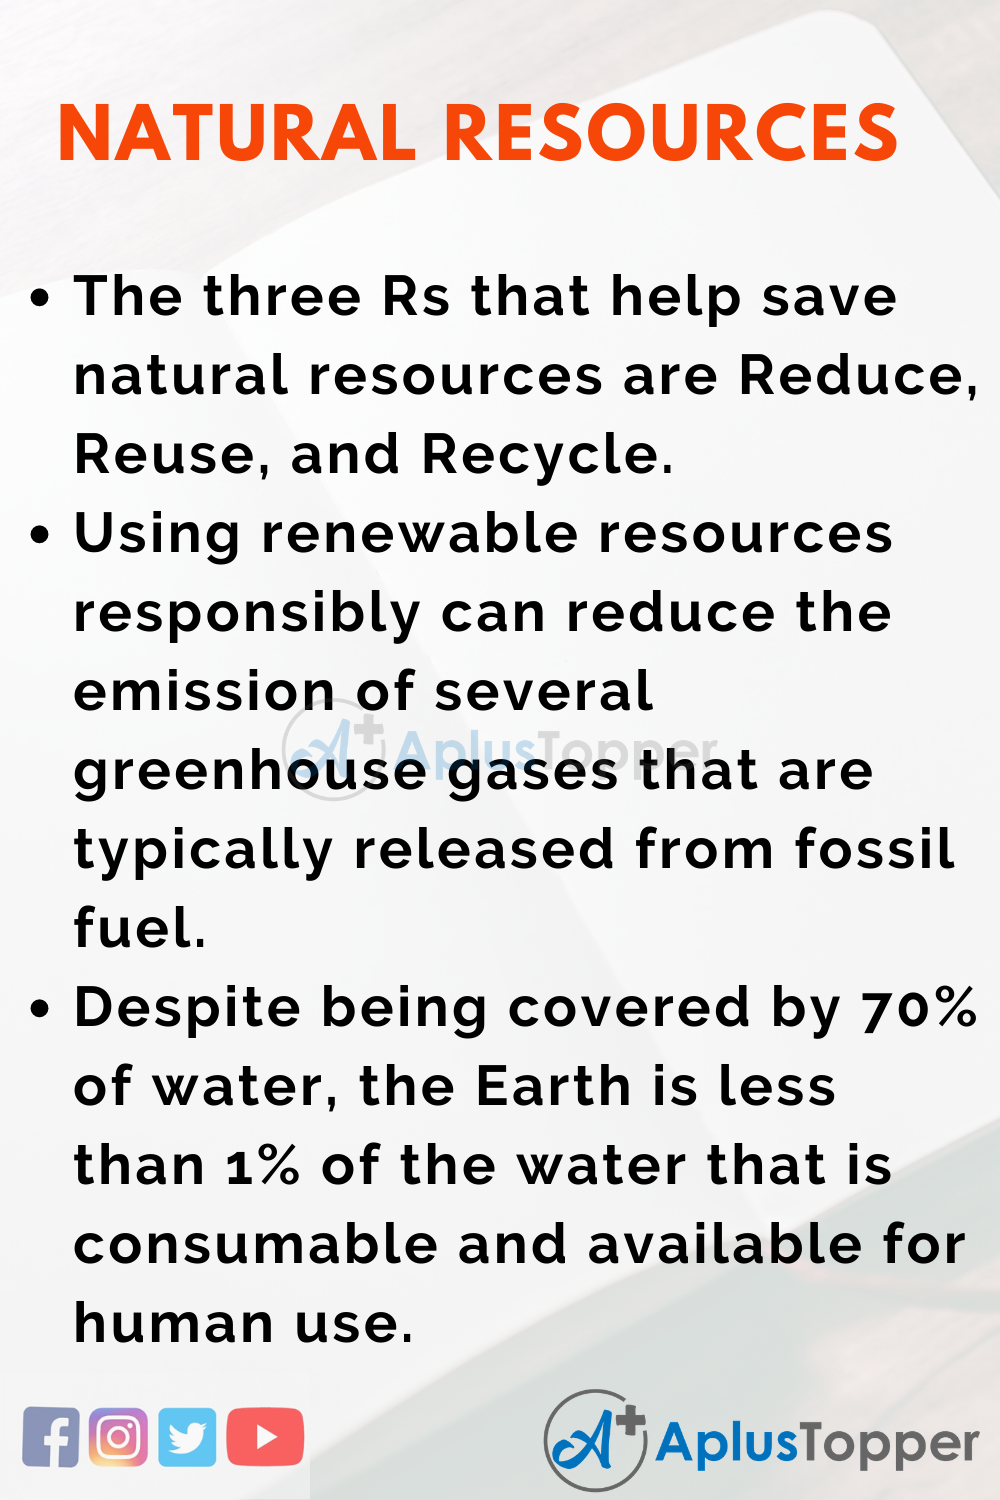 Essay about Natural Resources